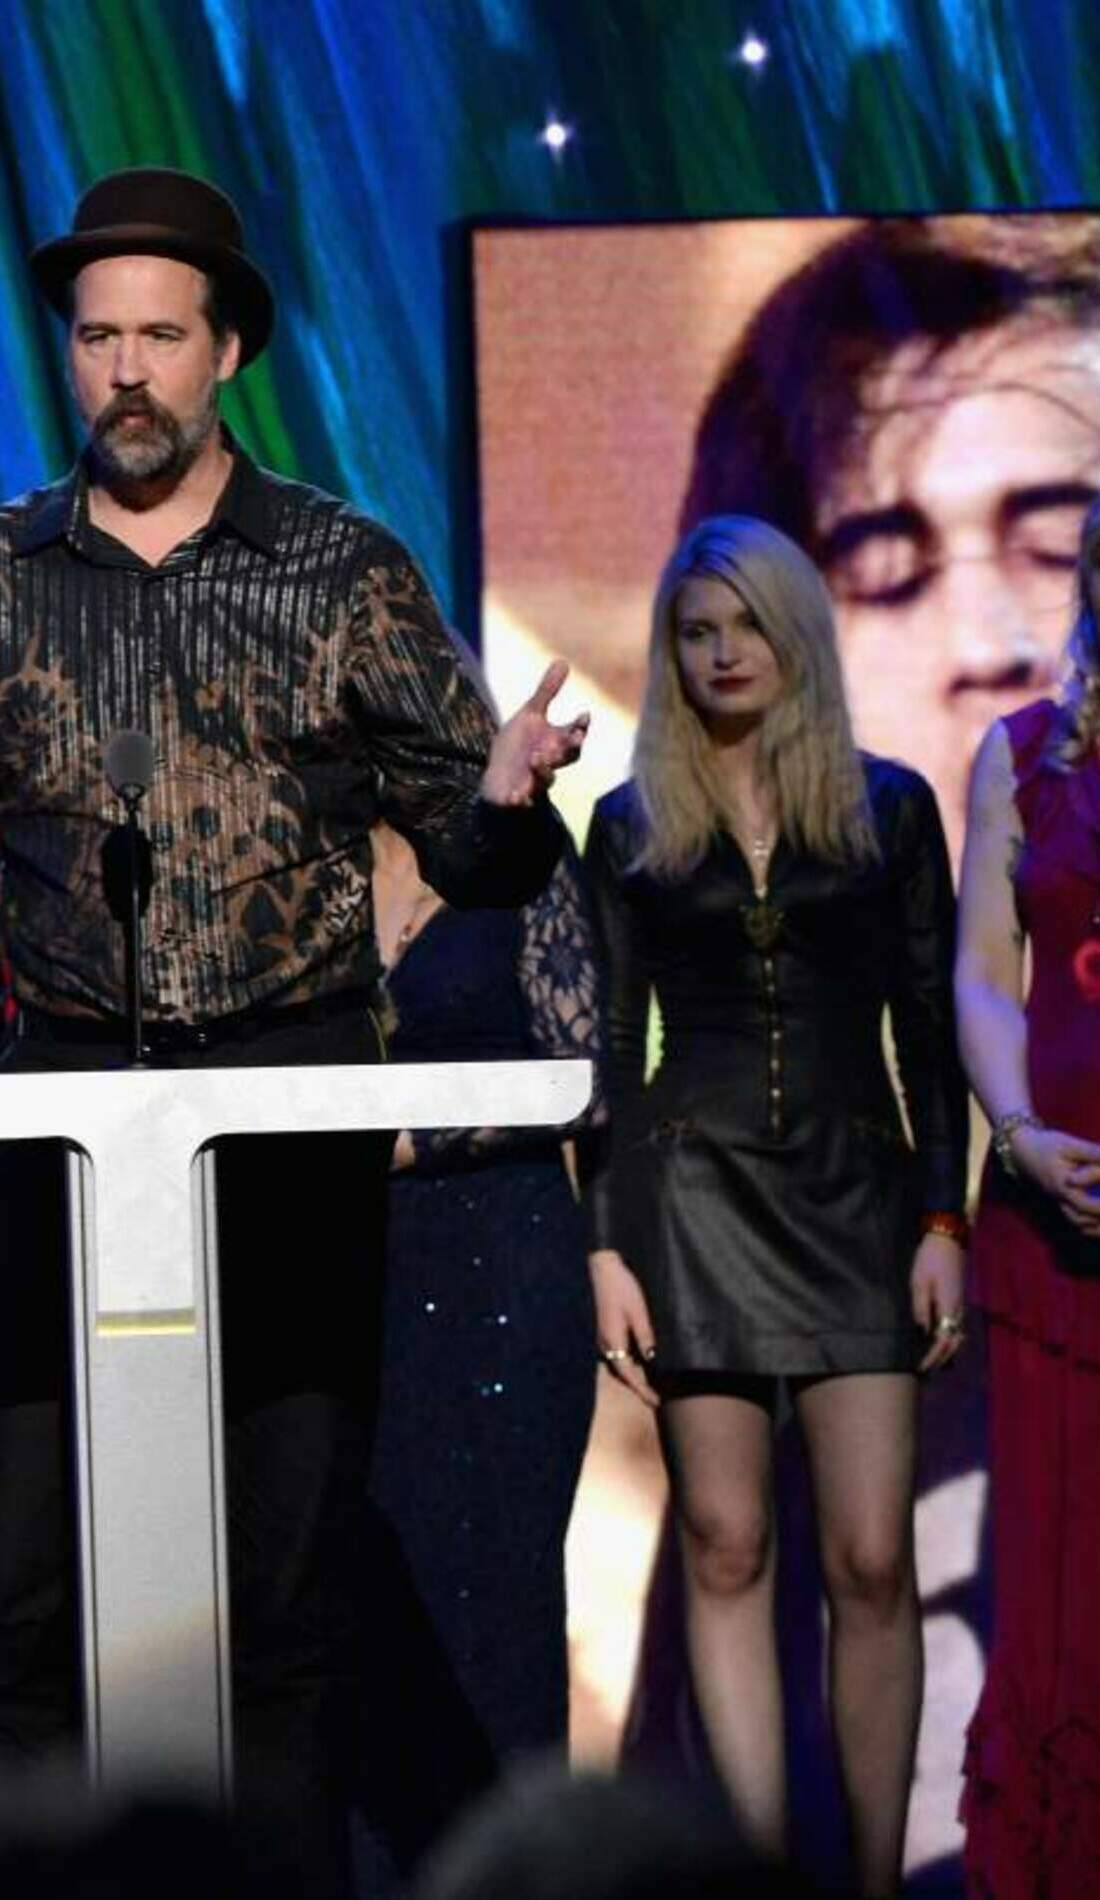 A Rock & Roll Hall of Fame 29th Induction Ceremony live event